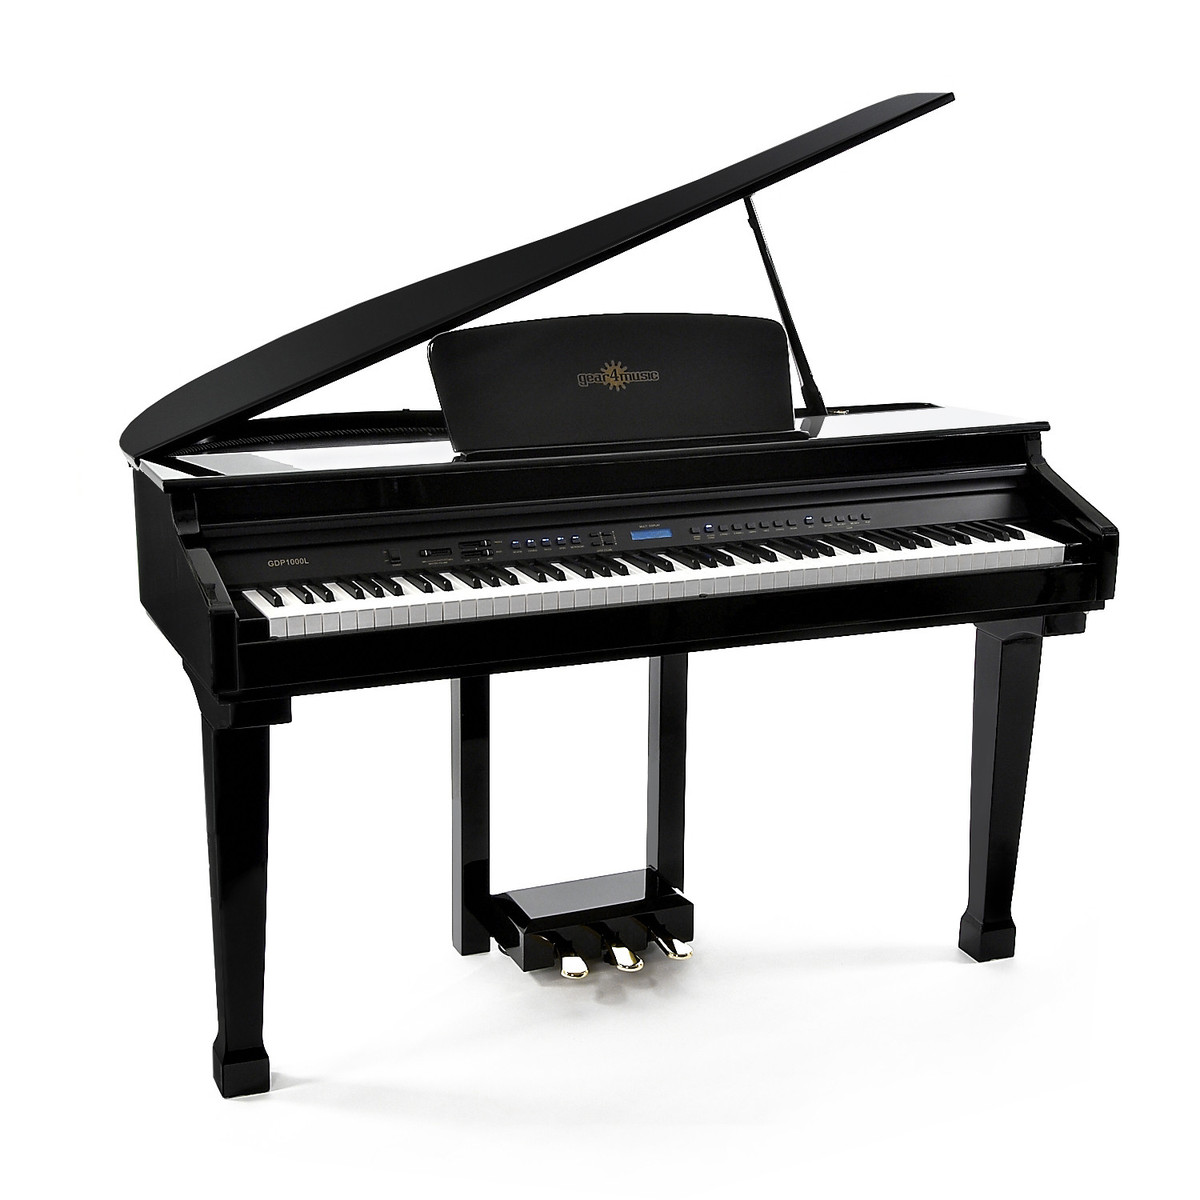 gdp 100 grand piano by gear4music ex demo at gear4music ie rh gear4music ie